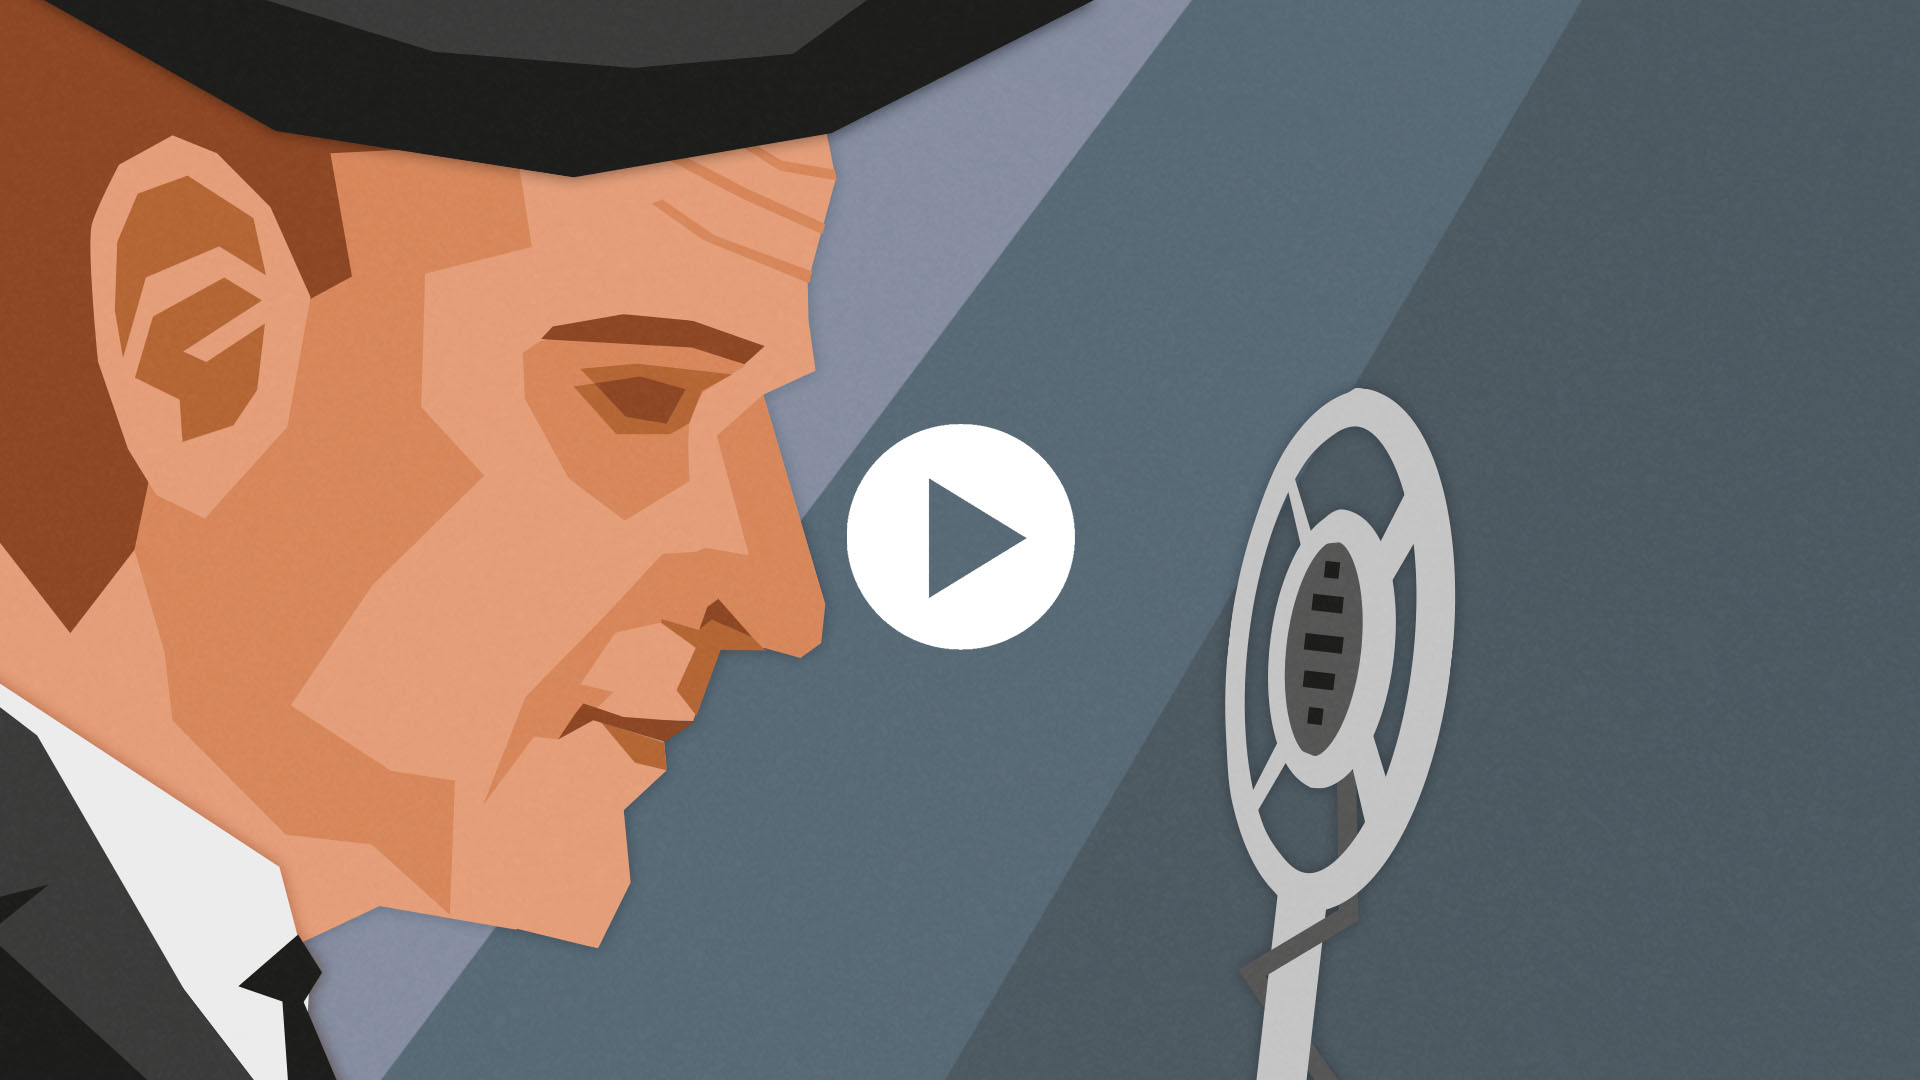 King's Speech Done in 60 Seconds